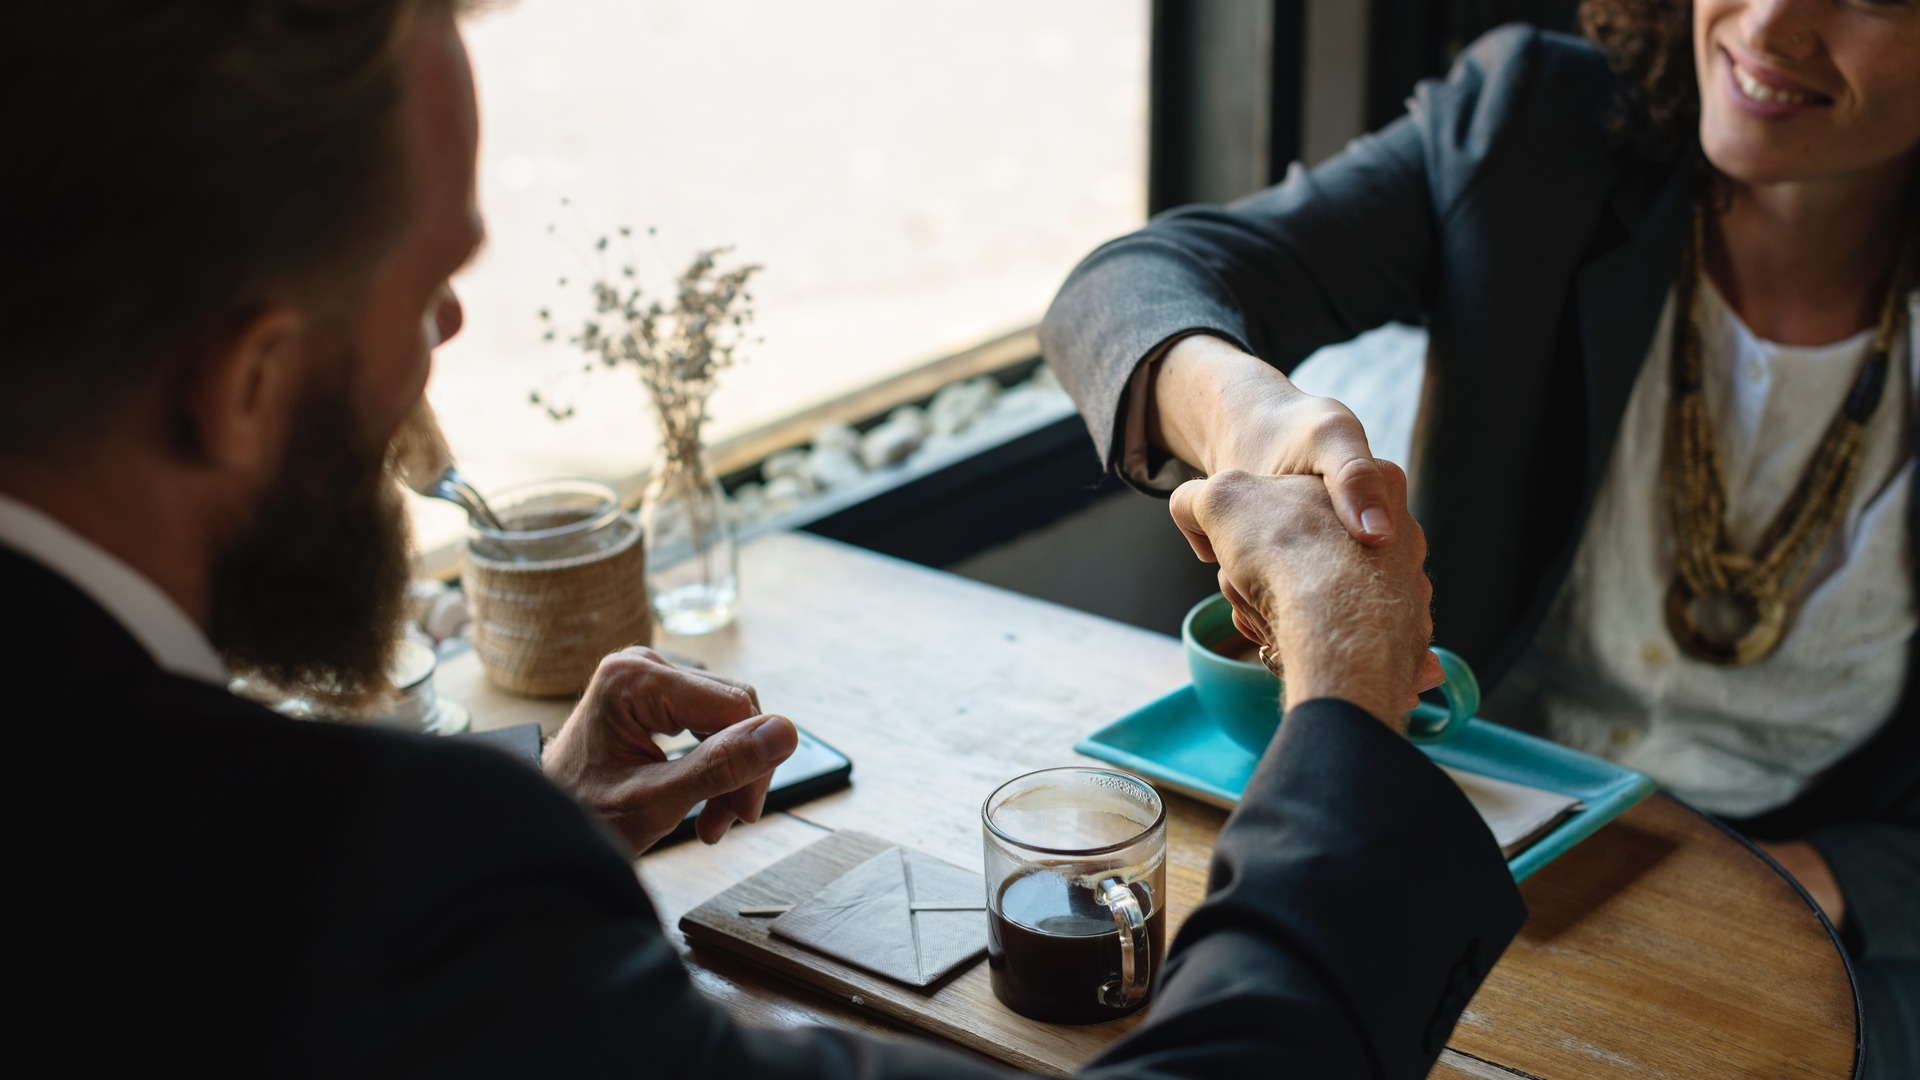 Two professionals shaking hands at a job interview